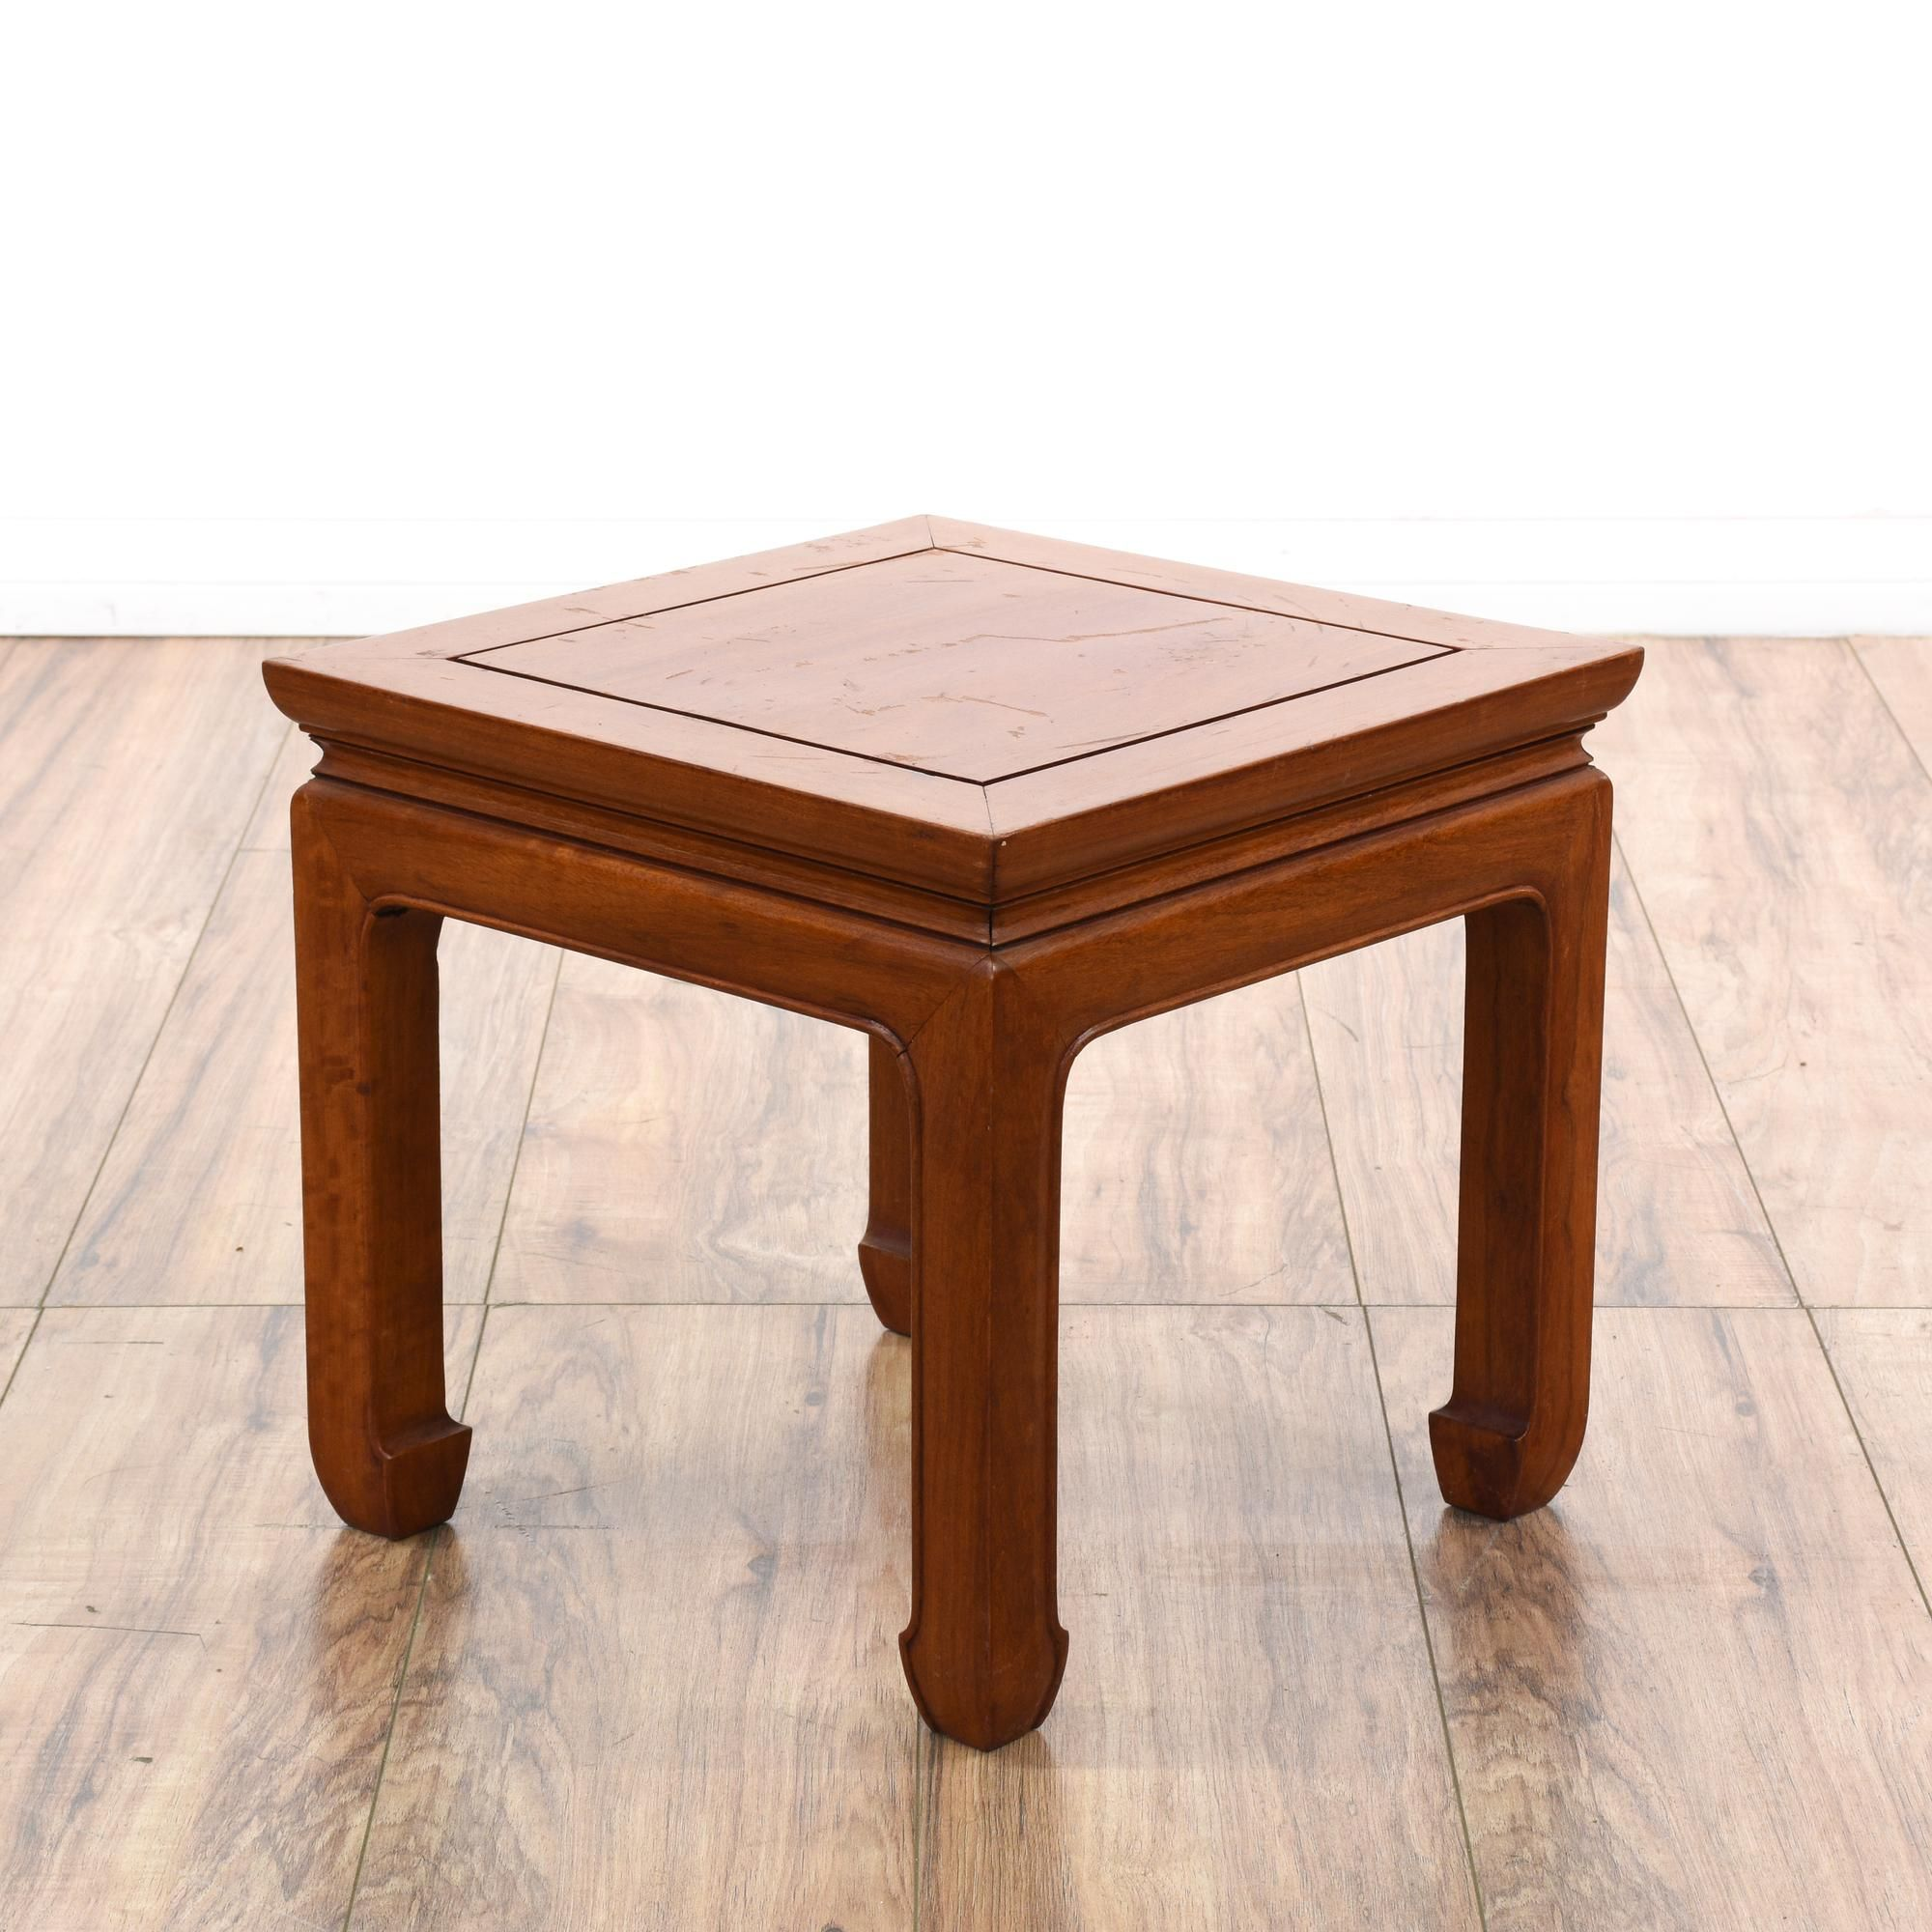 This Asian End Table Is Featured In A Solid Wood With A Glossy Teak Finish.  This Small Side Table Has A Square Table Top, Curved Chow Legs And Simple  Carved ...